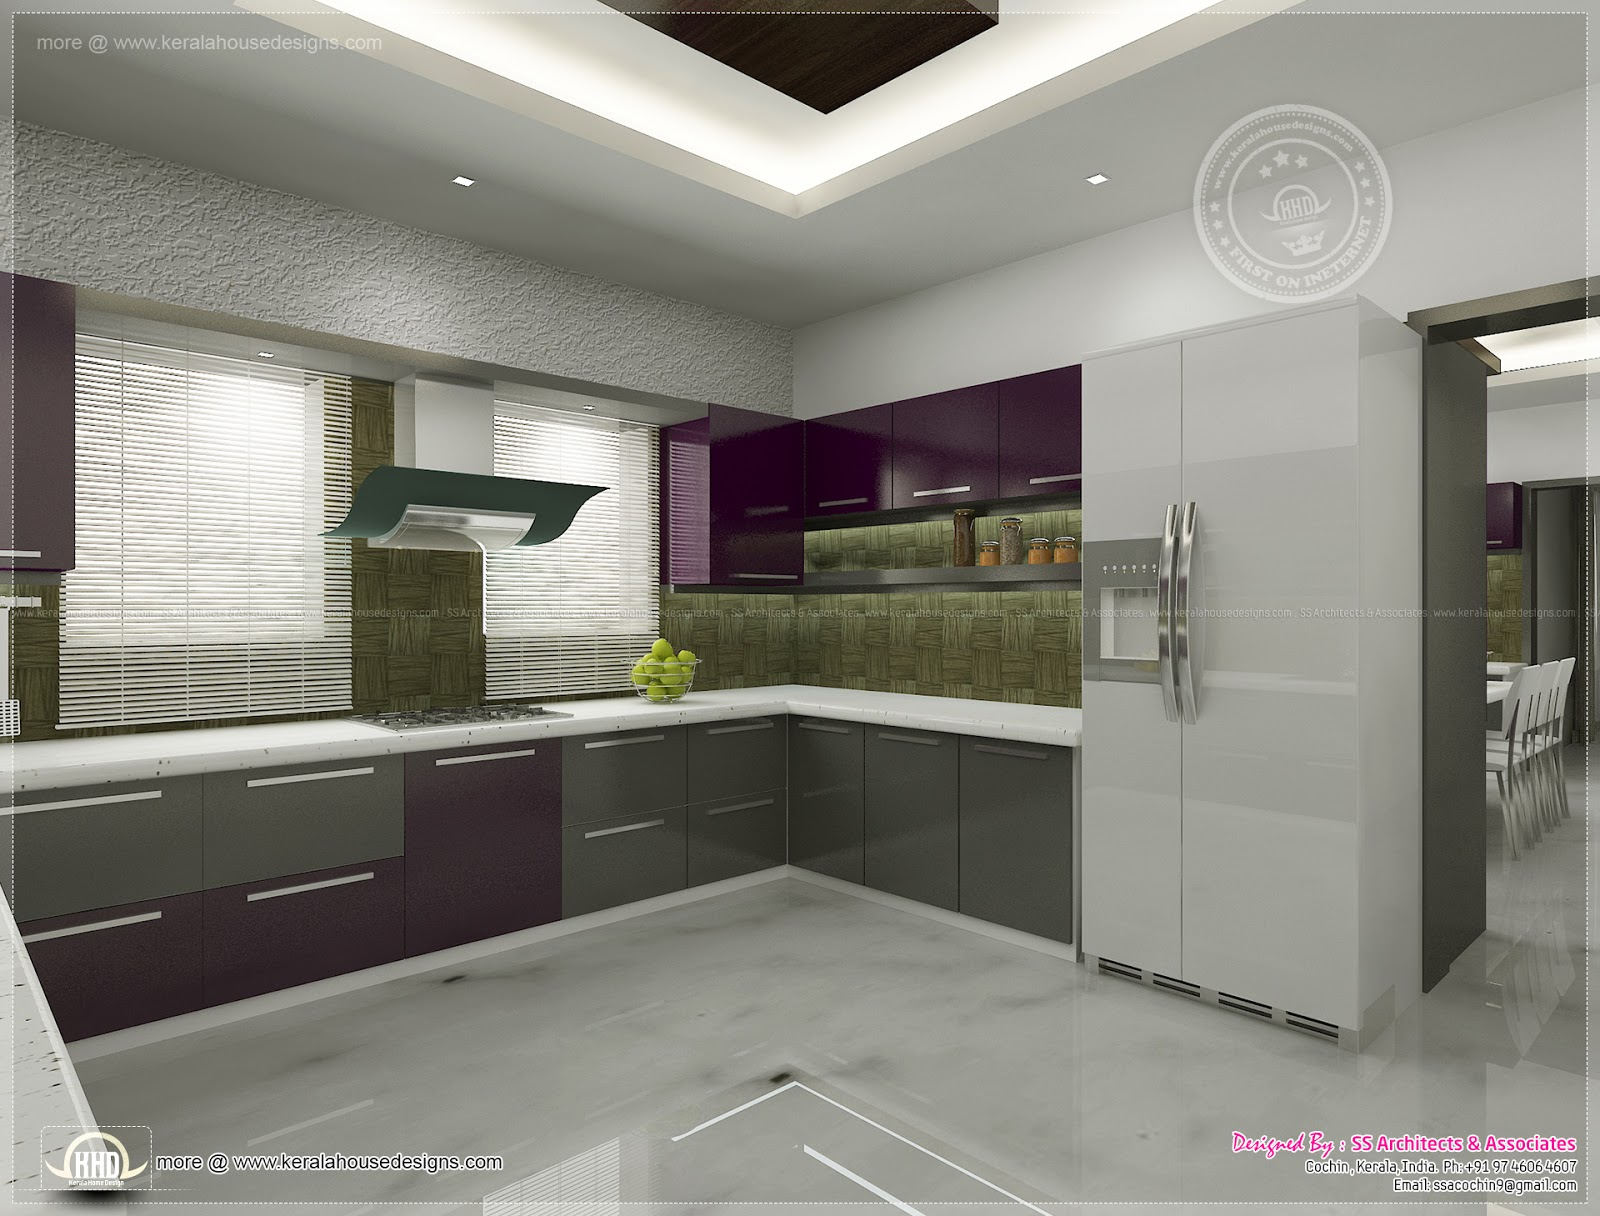 Kitchen interior views by ss architects cochin home kerala plans - Kitchen interior desing ...